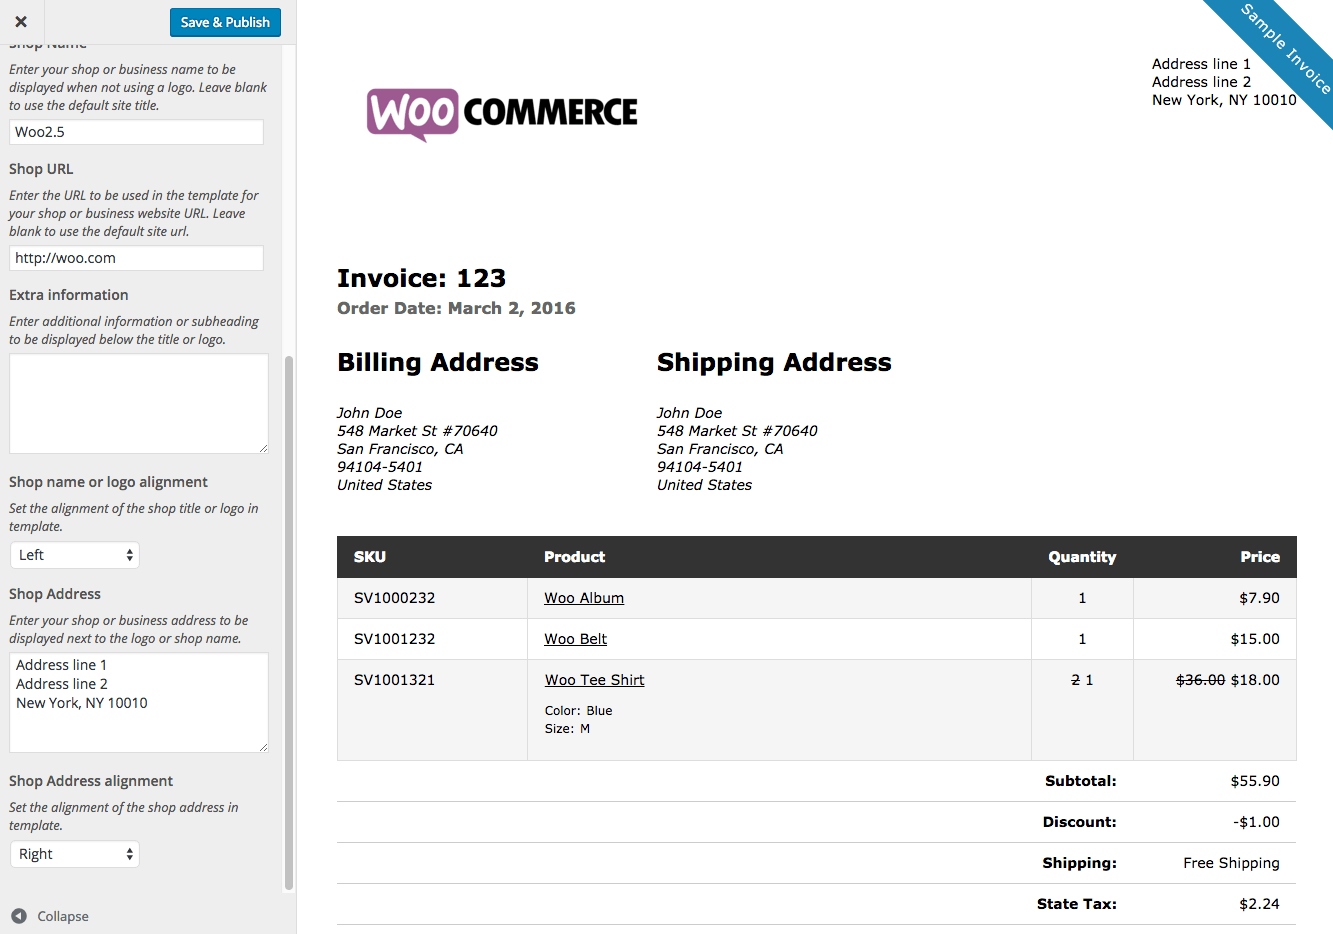 Ediblewildsus  Prepossessing Print Invoices Amp Packing Lists  Woocommerce With Licious Woocommerce Print Invoices  Packing Lists Customizer With Appealing  Way Matching Of Invoices Also Programs For Invoices In Addition Peachtree Invoice And Invoice Templa As Well As Invoice Smaple Additionally Builders Invoice Template From Woocommercecom With Ediblewildsus  Licious Print Invoices Amp Packing Lists  Woocommerce With Appealing Woocommerce Print Invoices  Packing Lists Customizer And Prepossessing  Way Matching Of Invoices Also Programs For Invoices In Addition Peachtree Invoice From Woocommercecom